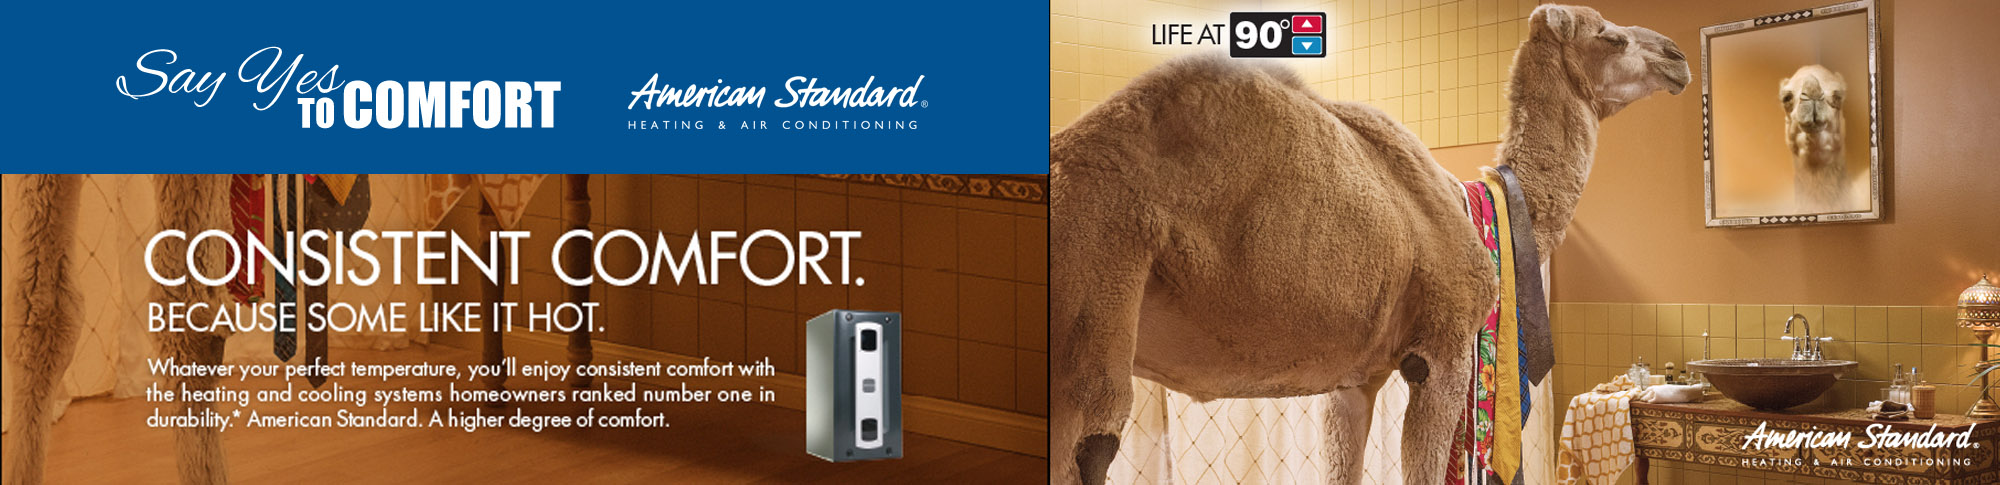 For consistent comfort, install a new American Standard Furnace